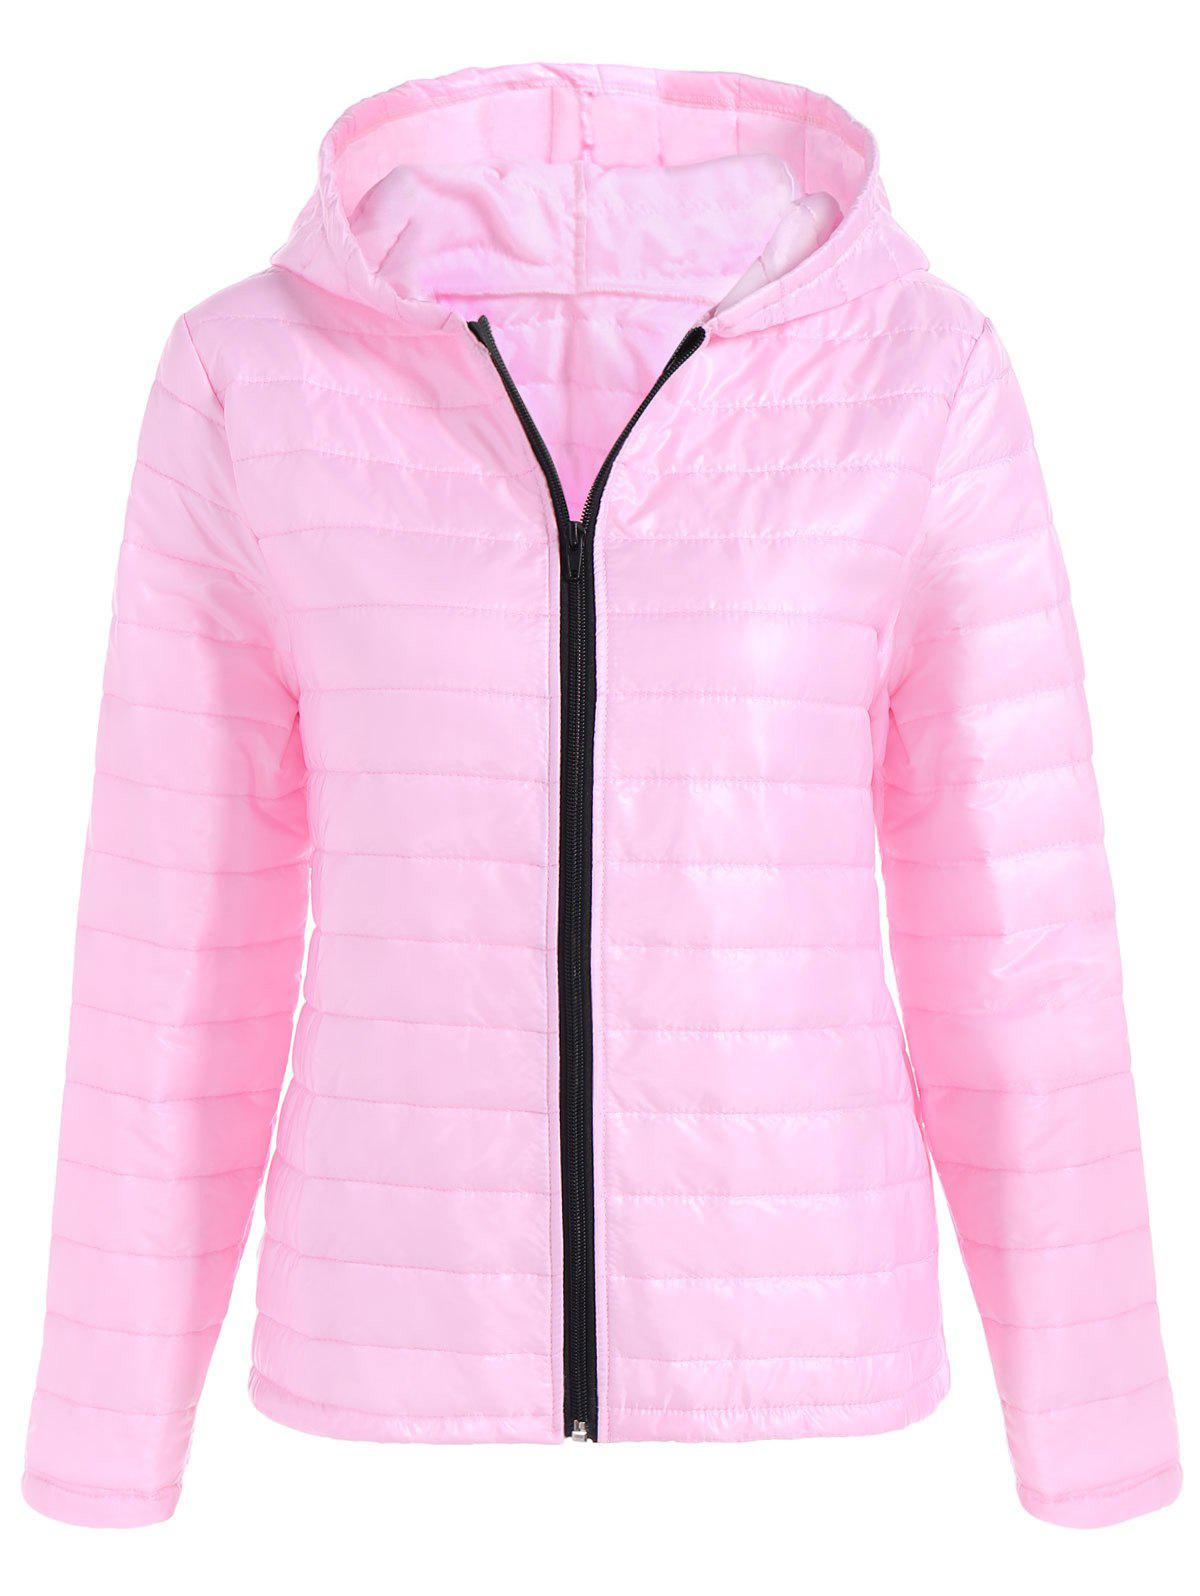 Slim Quilted Winter Jacket with Hood одеяло для cocoonababy quilted cocoonacover quilted grey 49118